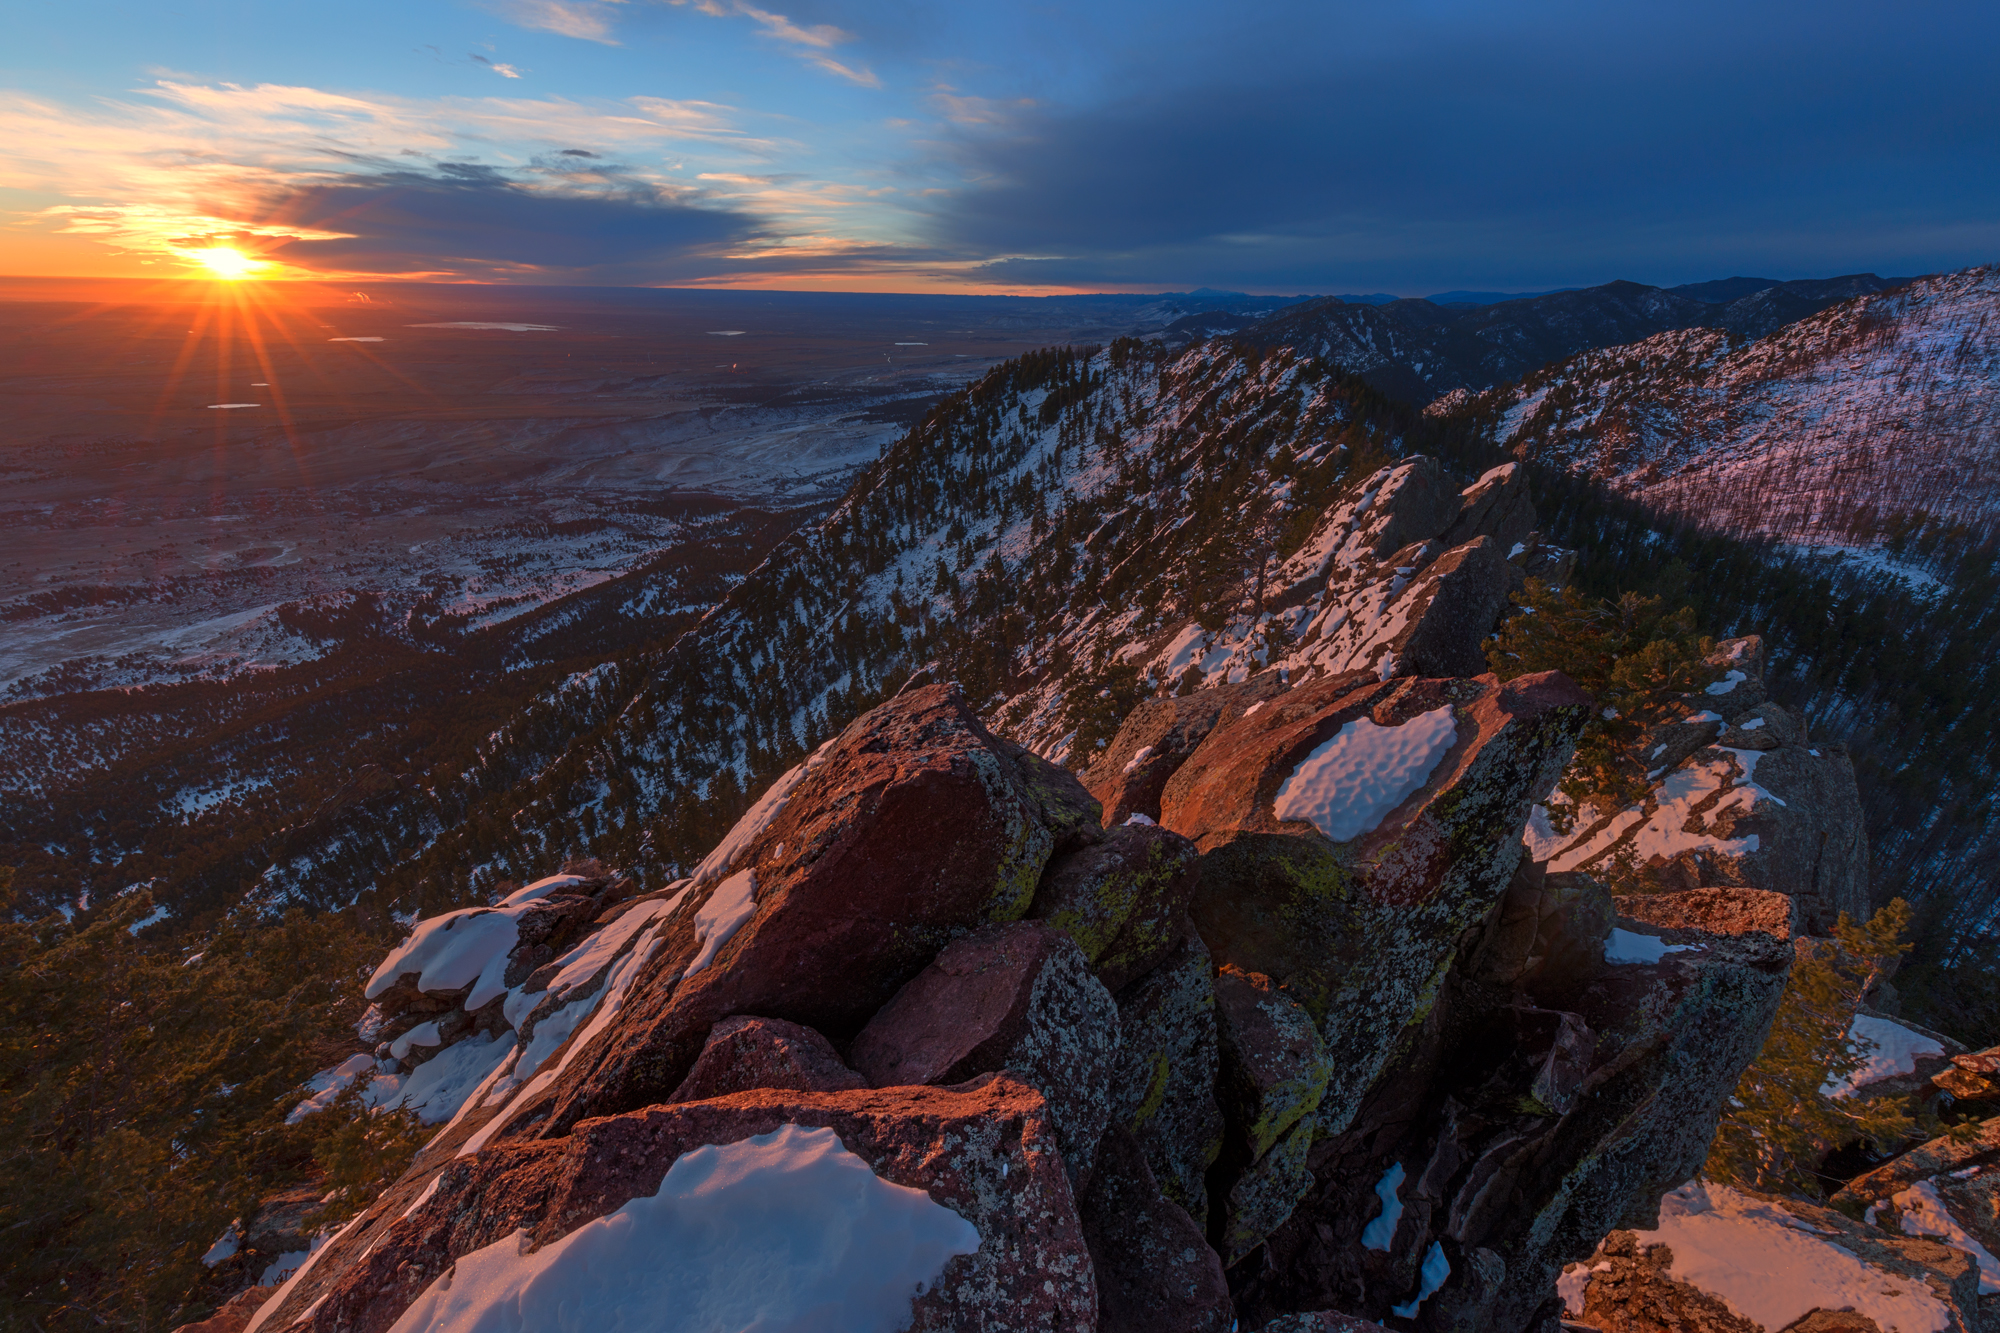 The View South at Sunrise. From Bear Peak, Boulder, Colorado, 2014